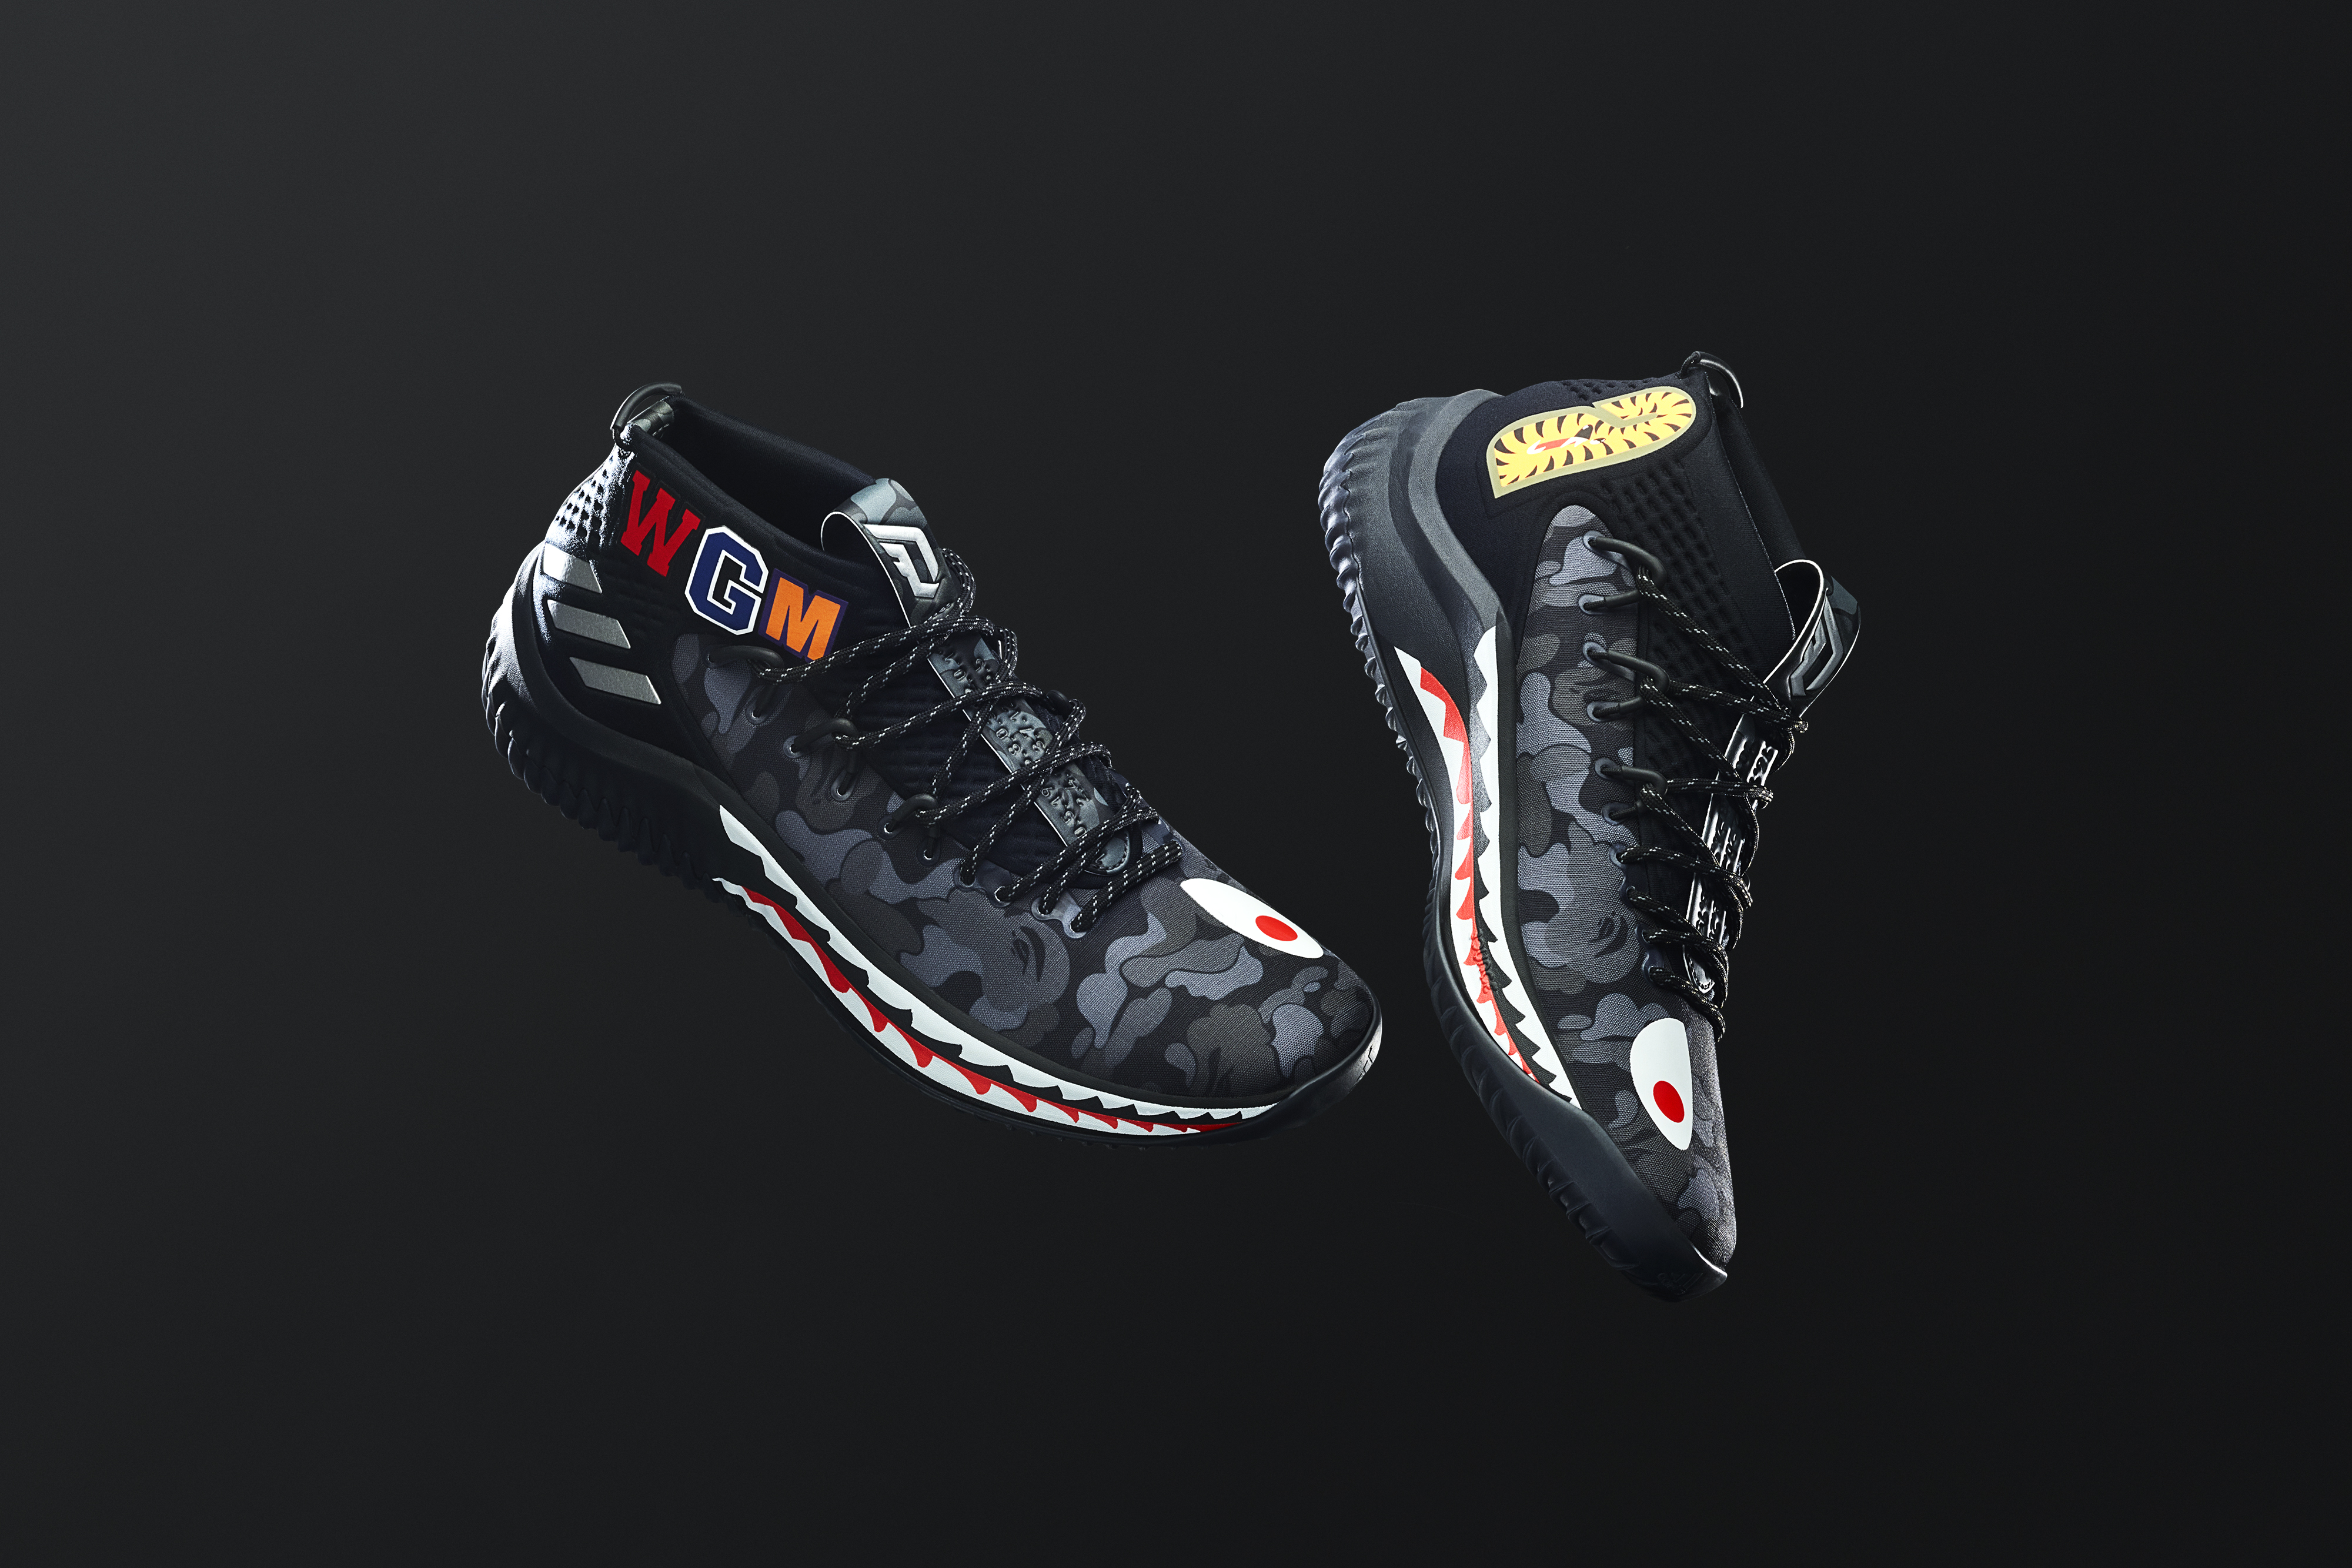 new product ff0dc 21530 BAPEs iconic camo runs across the upper on all three green, black, and red  designs, with shark teeth dotted across the soles. BAPEs WGMs are stamped  on ...